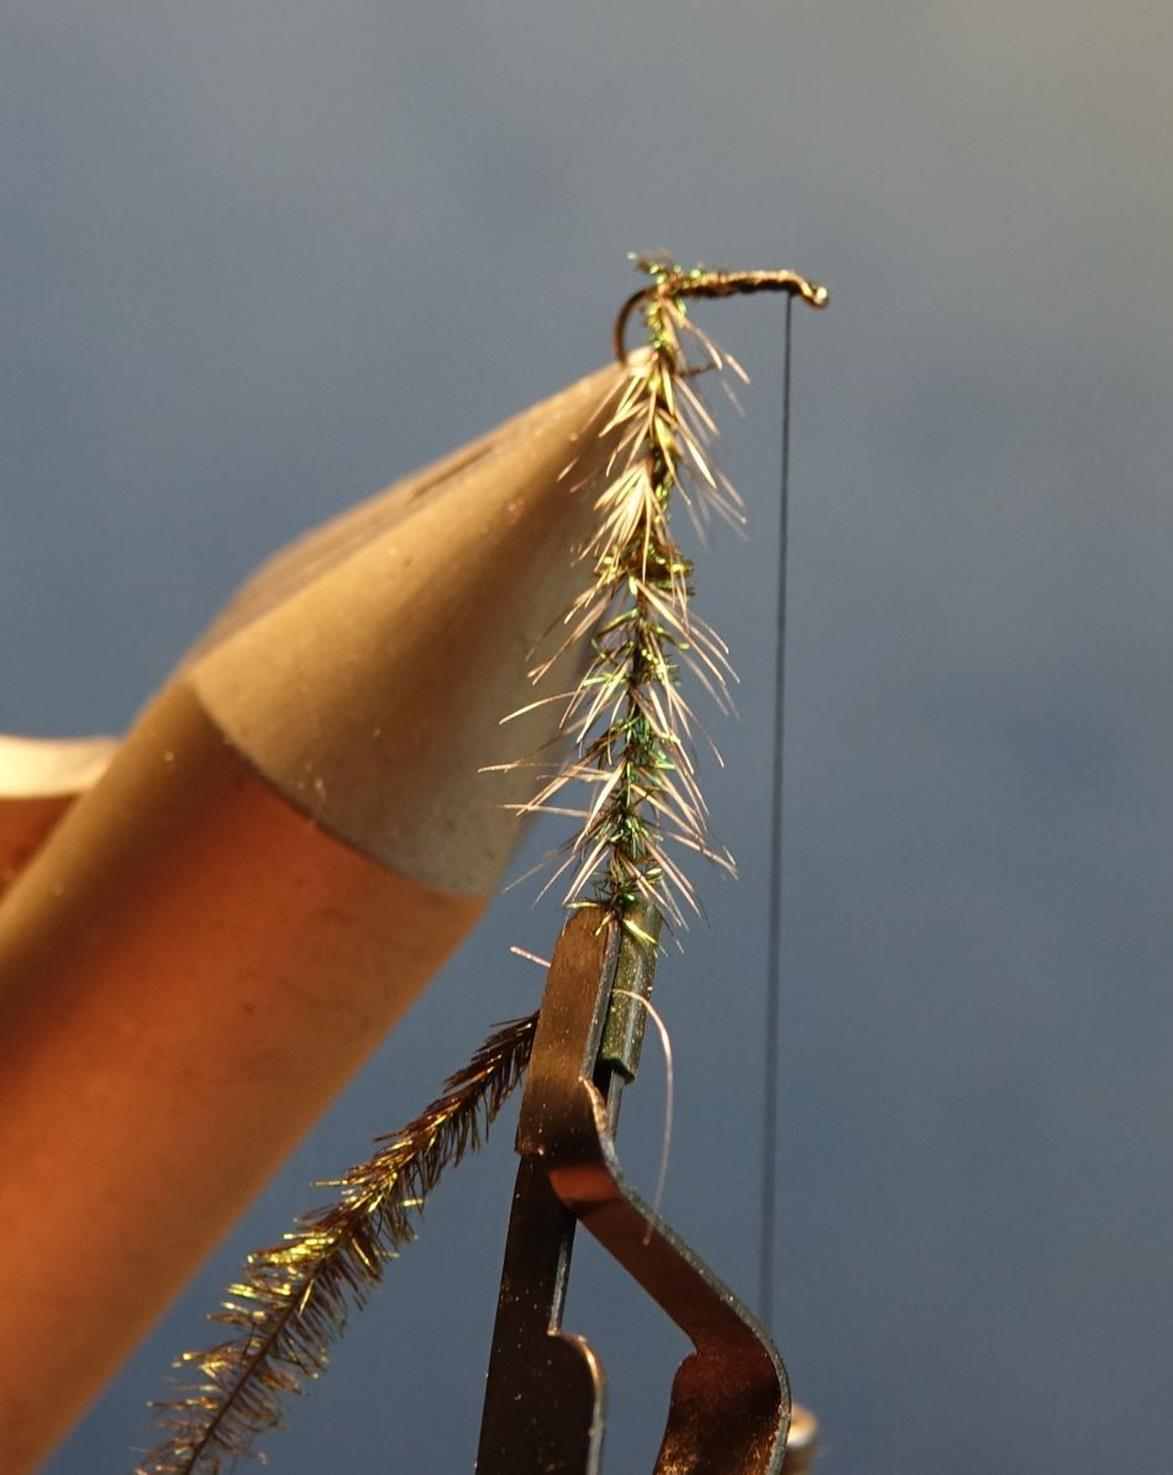 Gnat herl paon hackle grizzly mouche fly tying eclosion